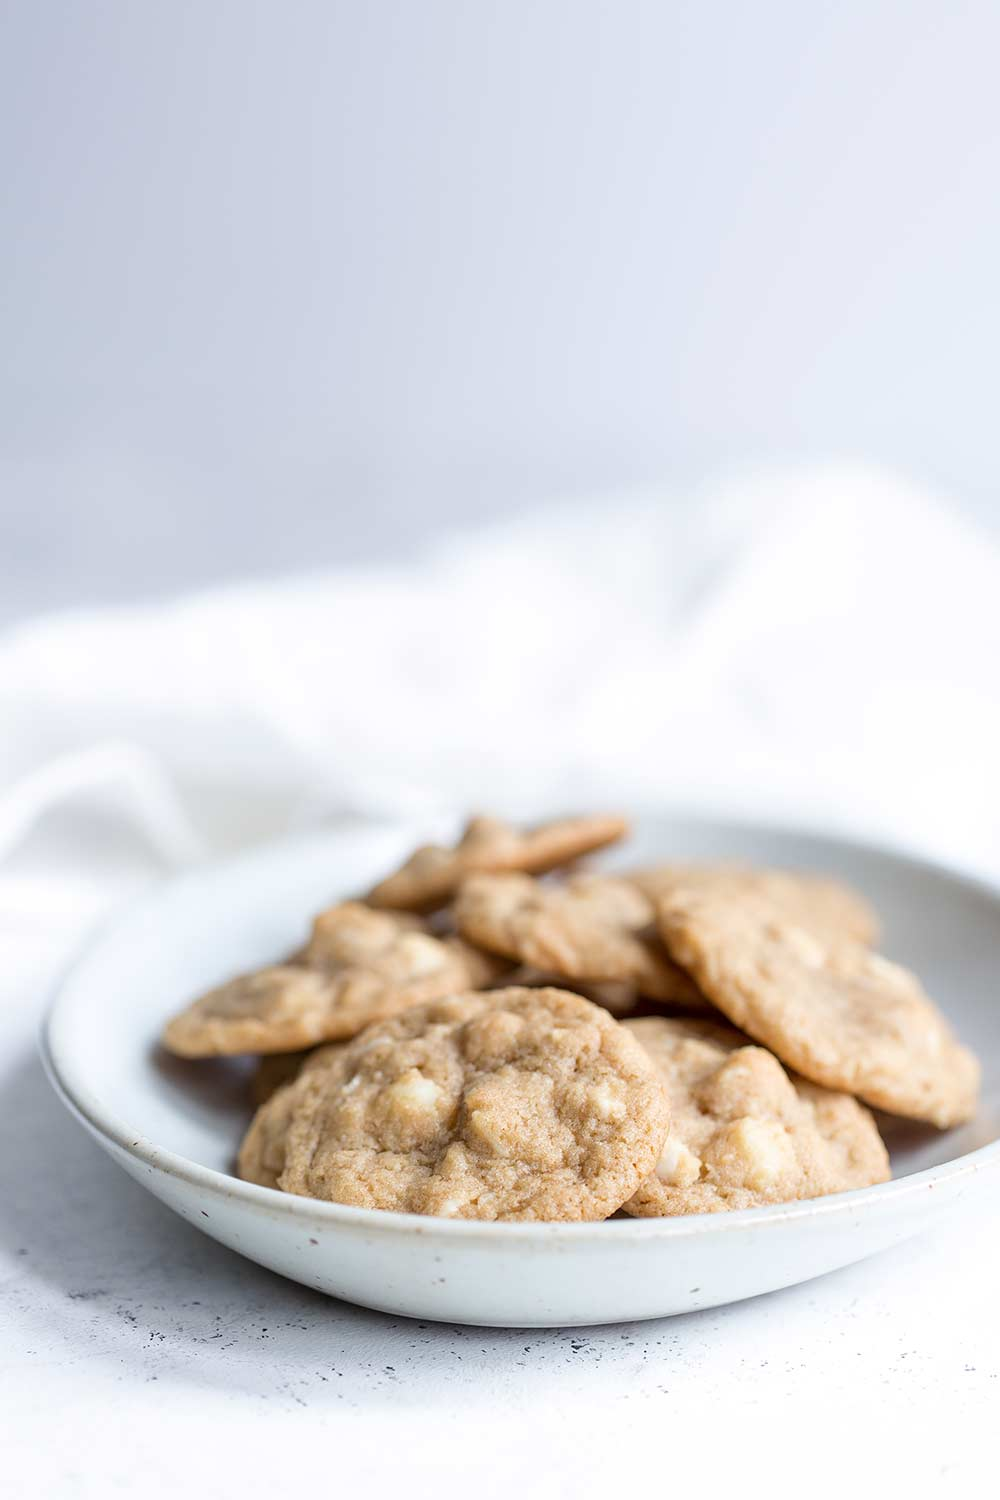 White chocolate macadamia nut cookies in a serving bowl